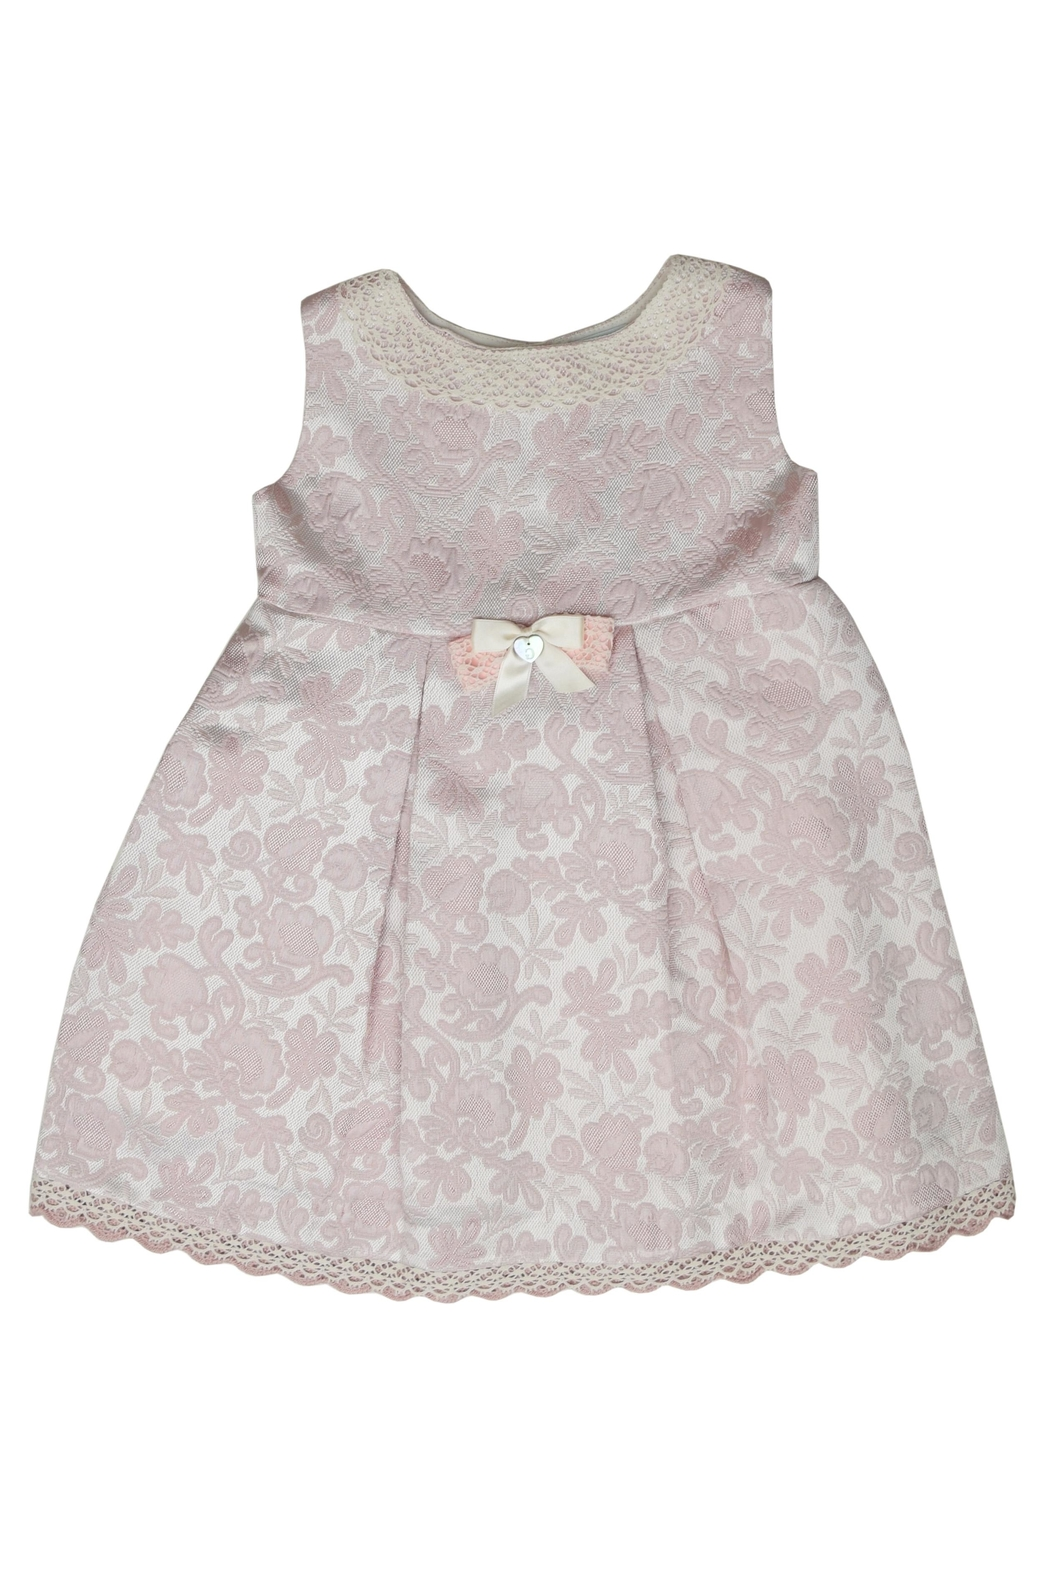 Granlei 1980 Rose Floral Dress - Front Cropped Image